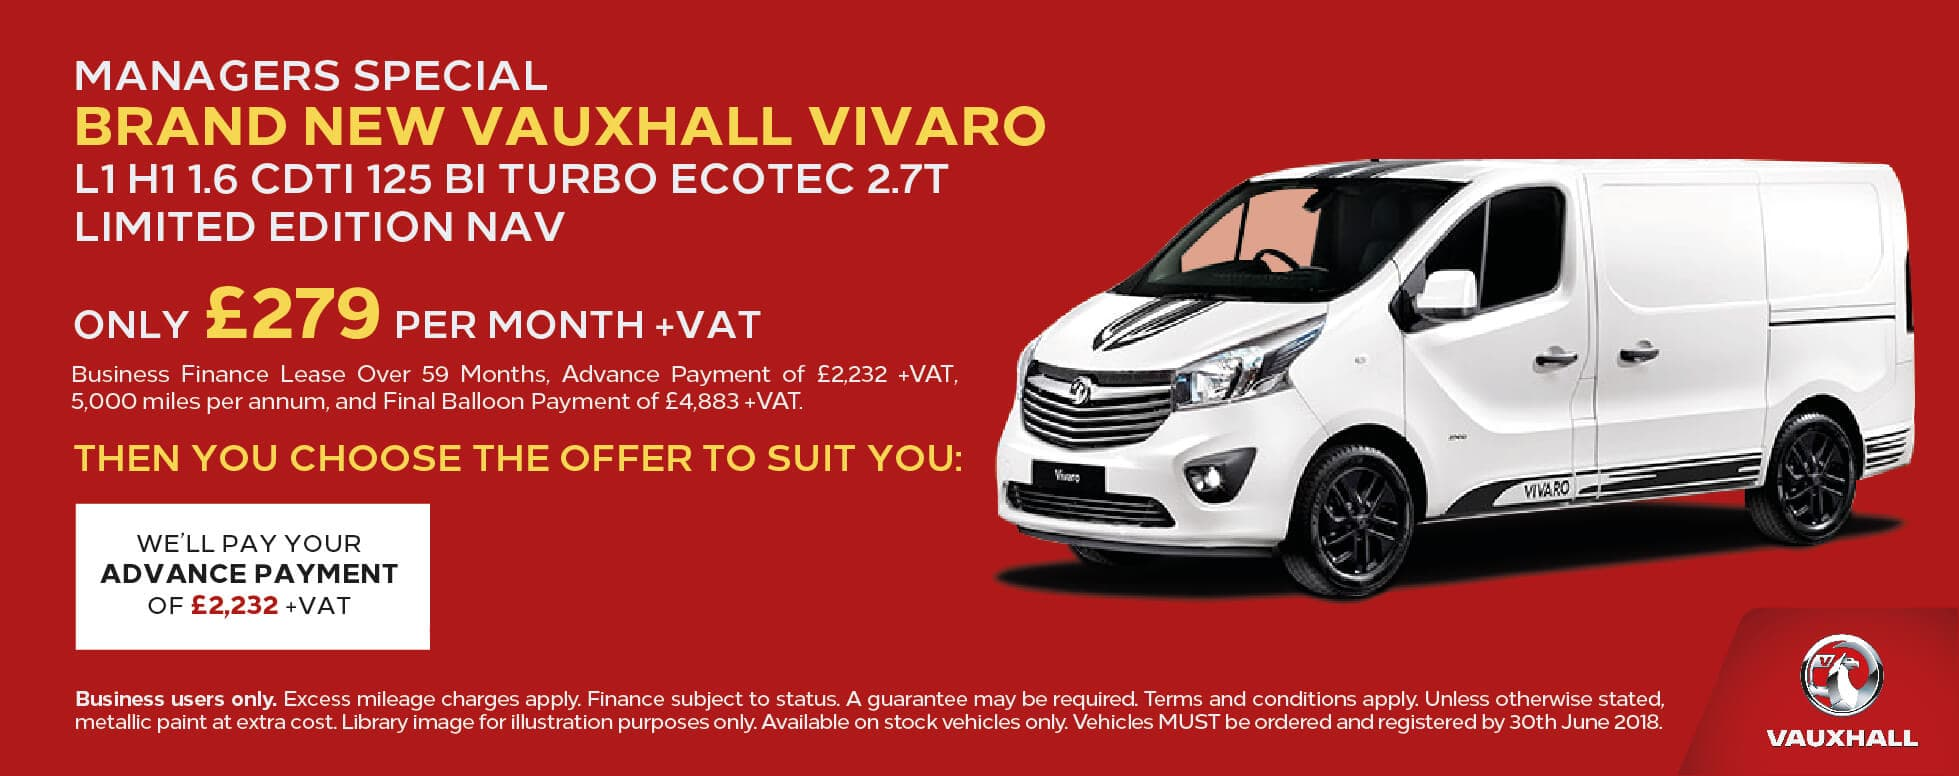 Manager Specials Vauxhall Vivaro LTD BB